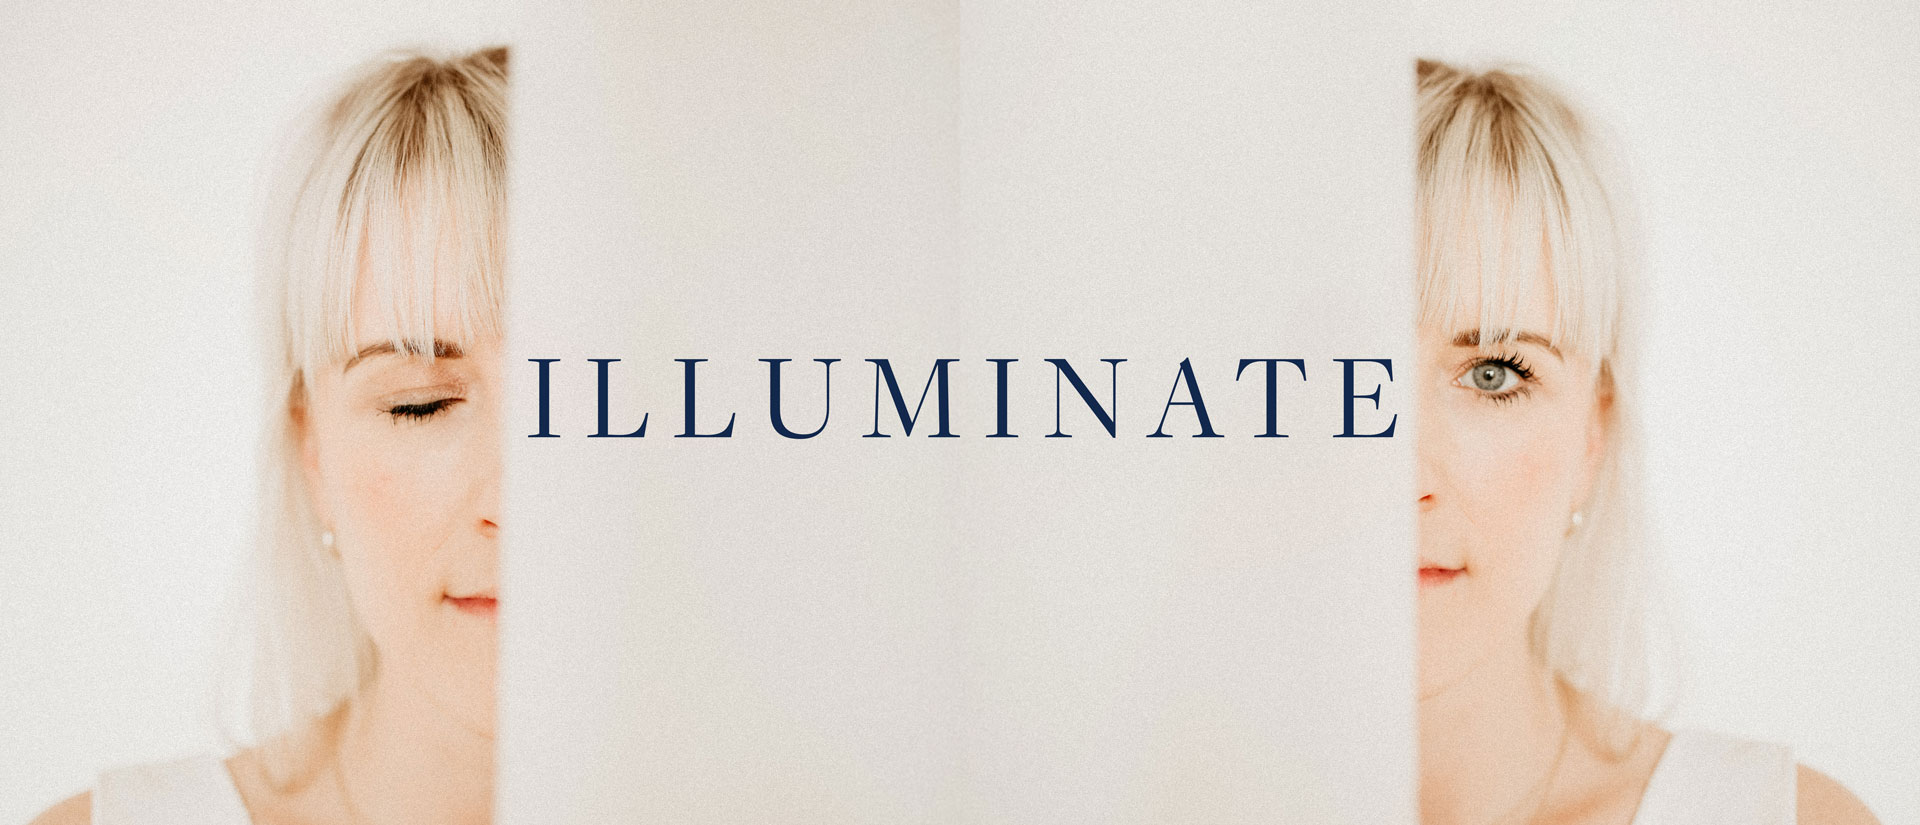 new-illuminate.jpg